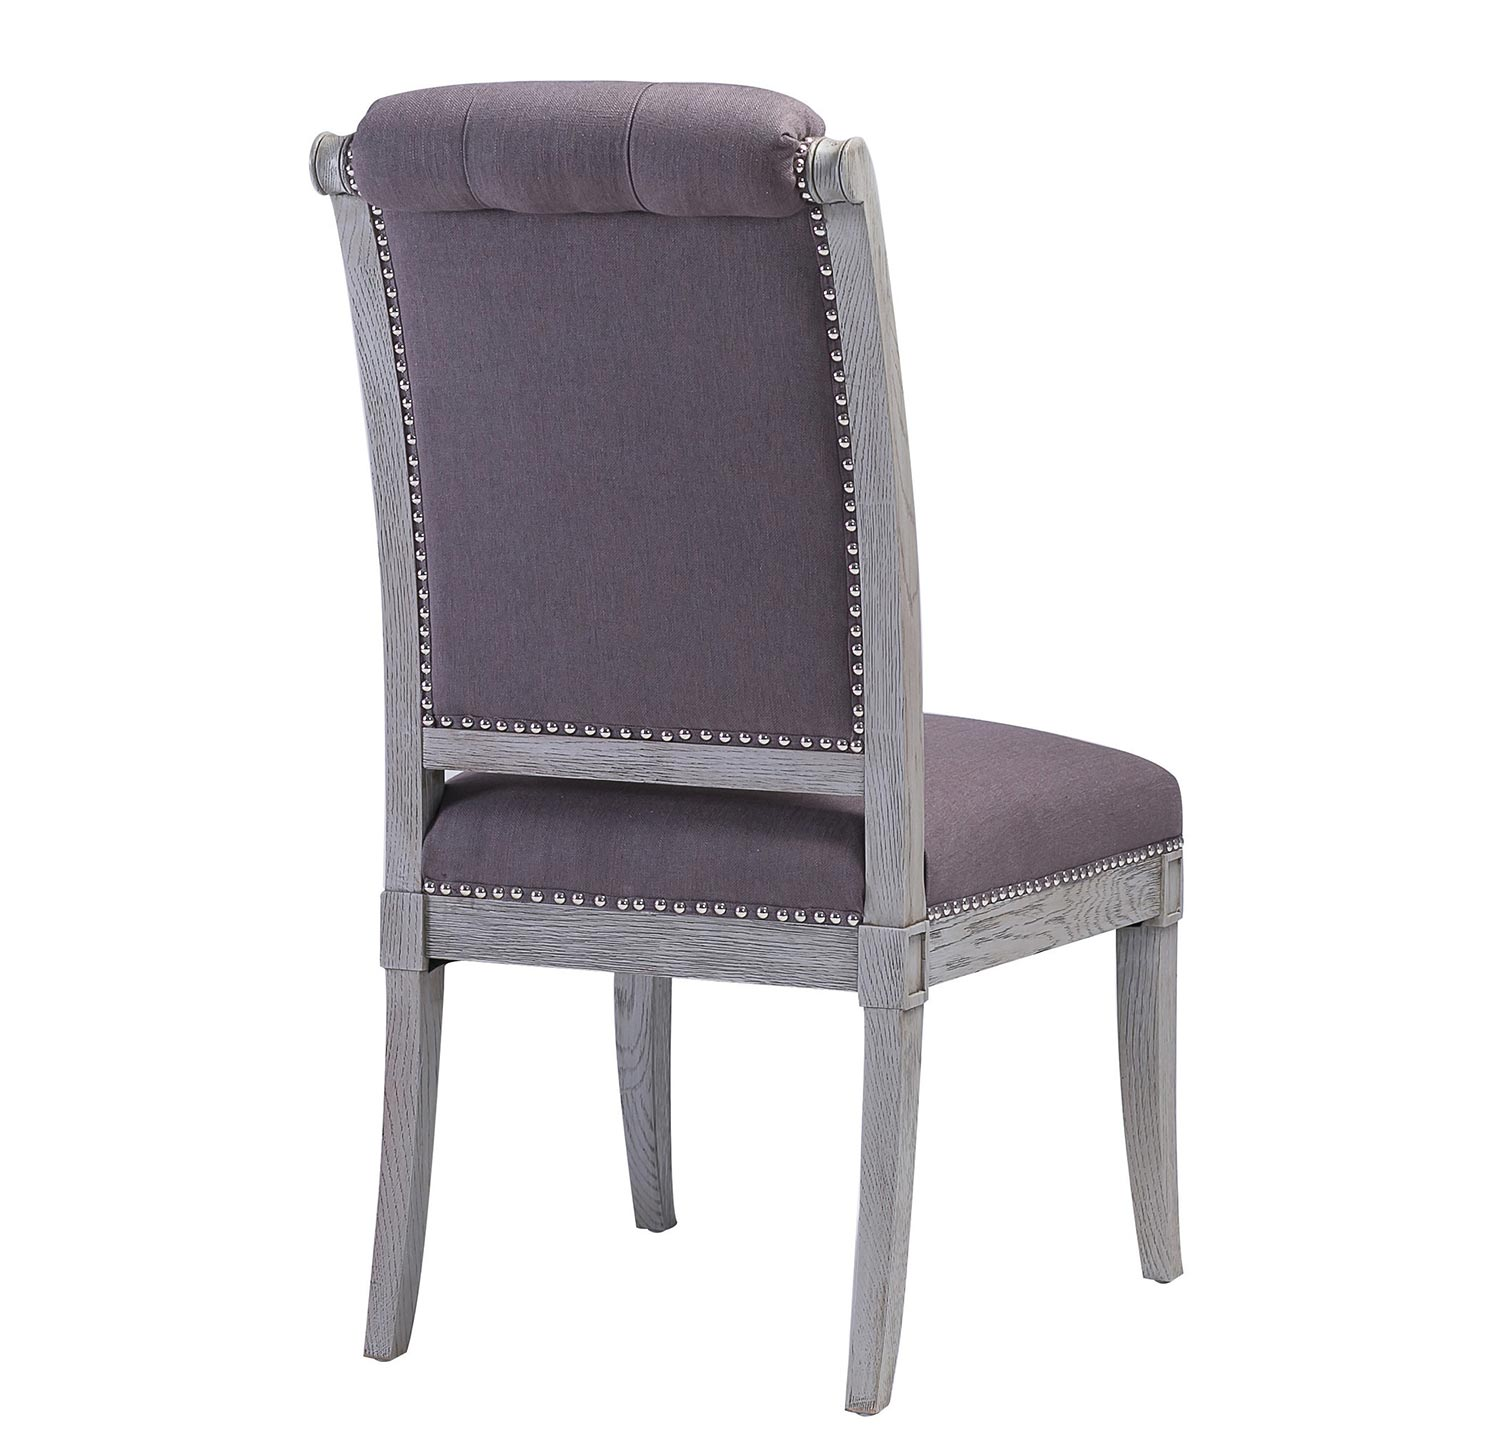 TOV Furniture Addington Grey Chair - Grey - Set of 2